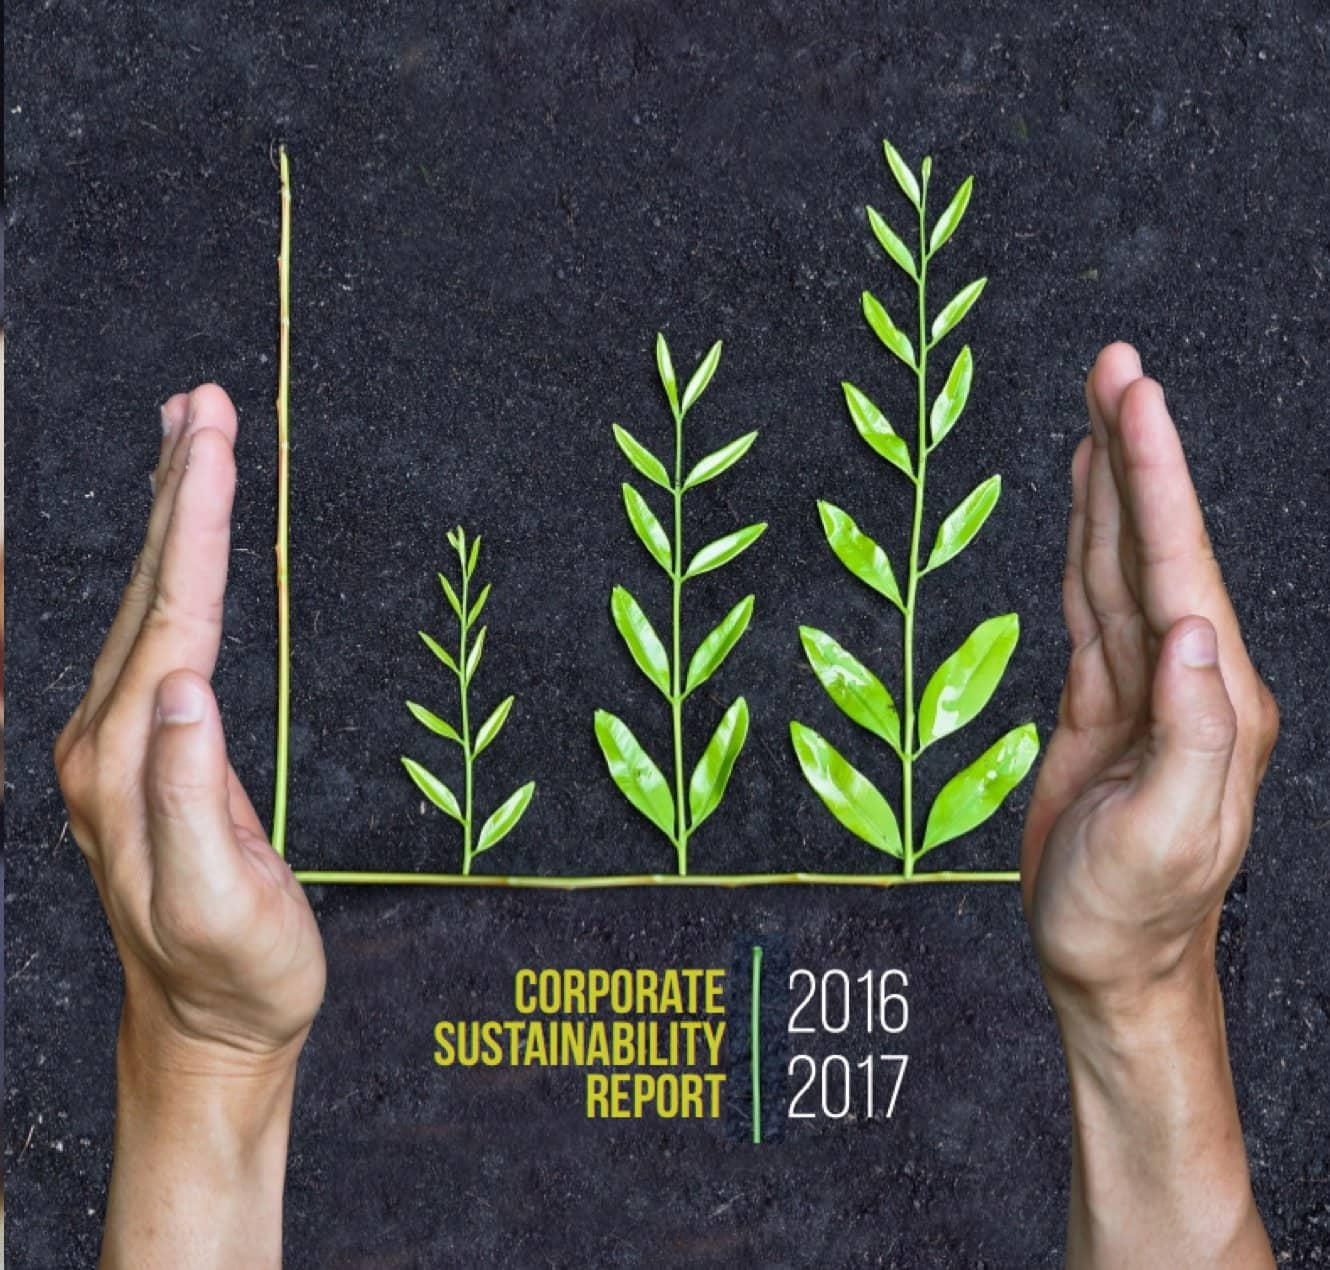 CORPORATE SUSTAINABILITY REPORT 2016-2017